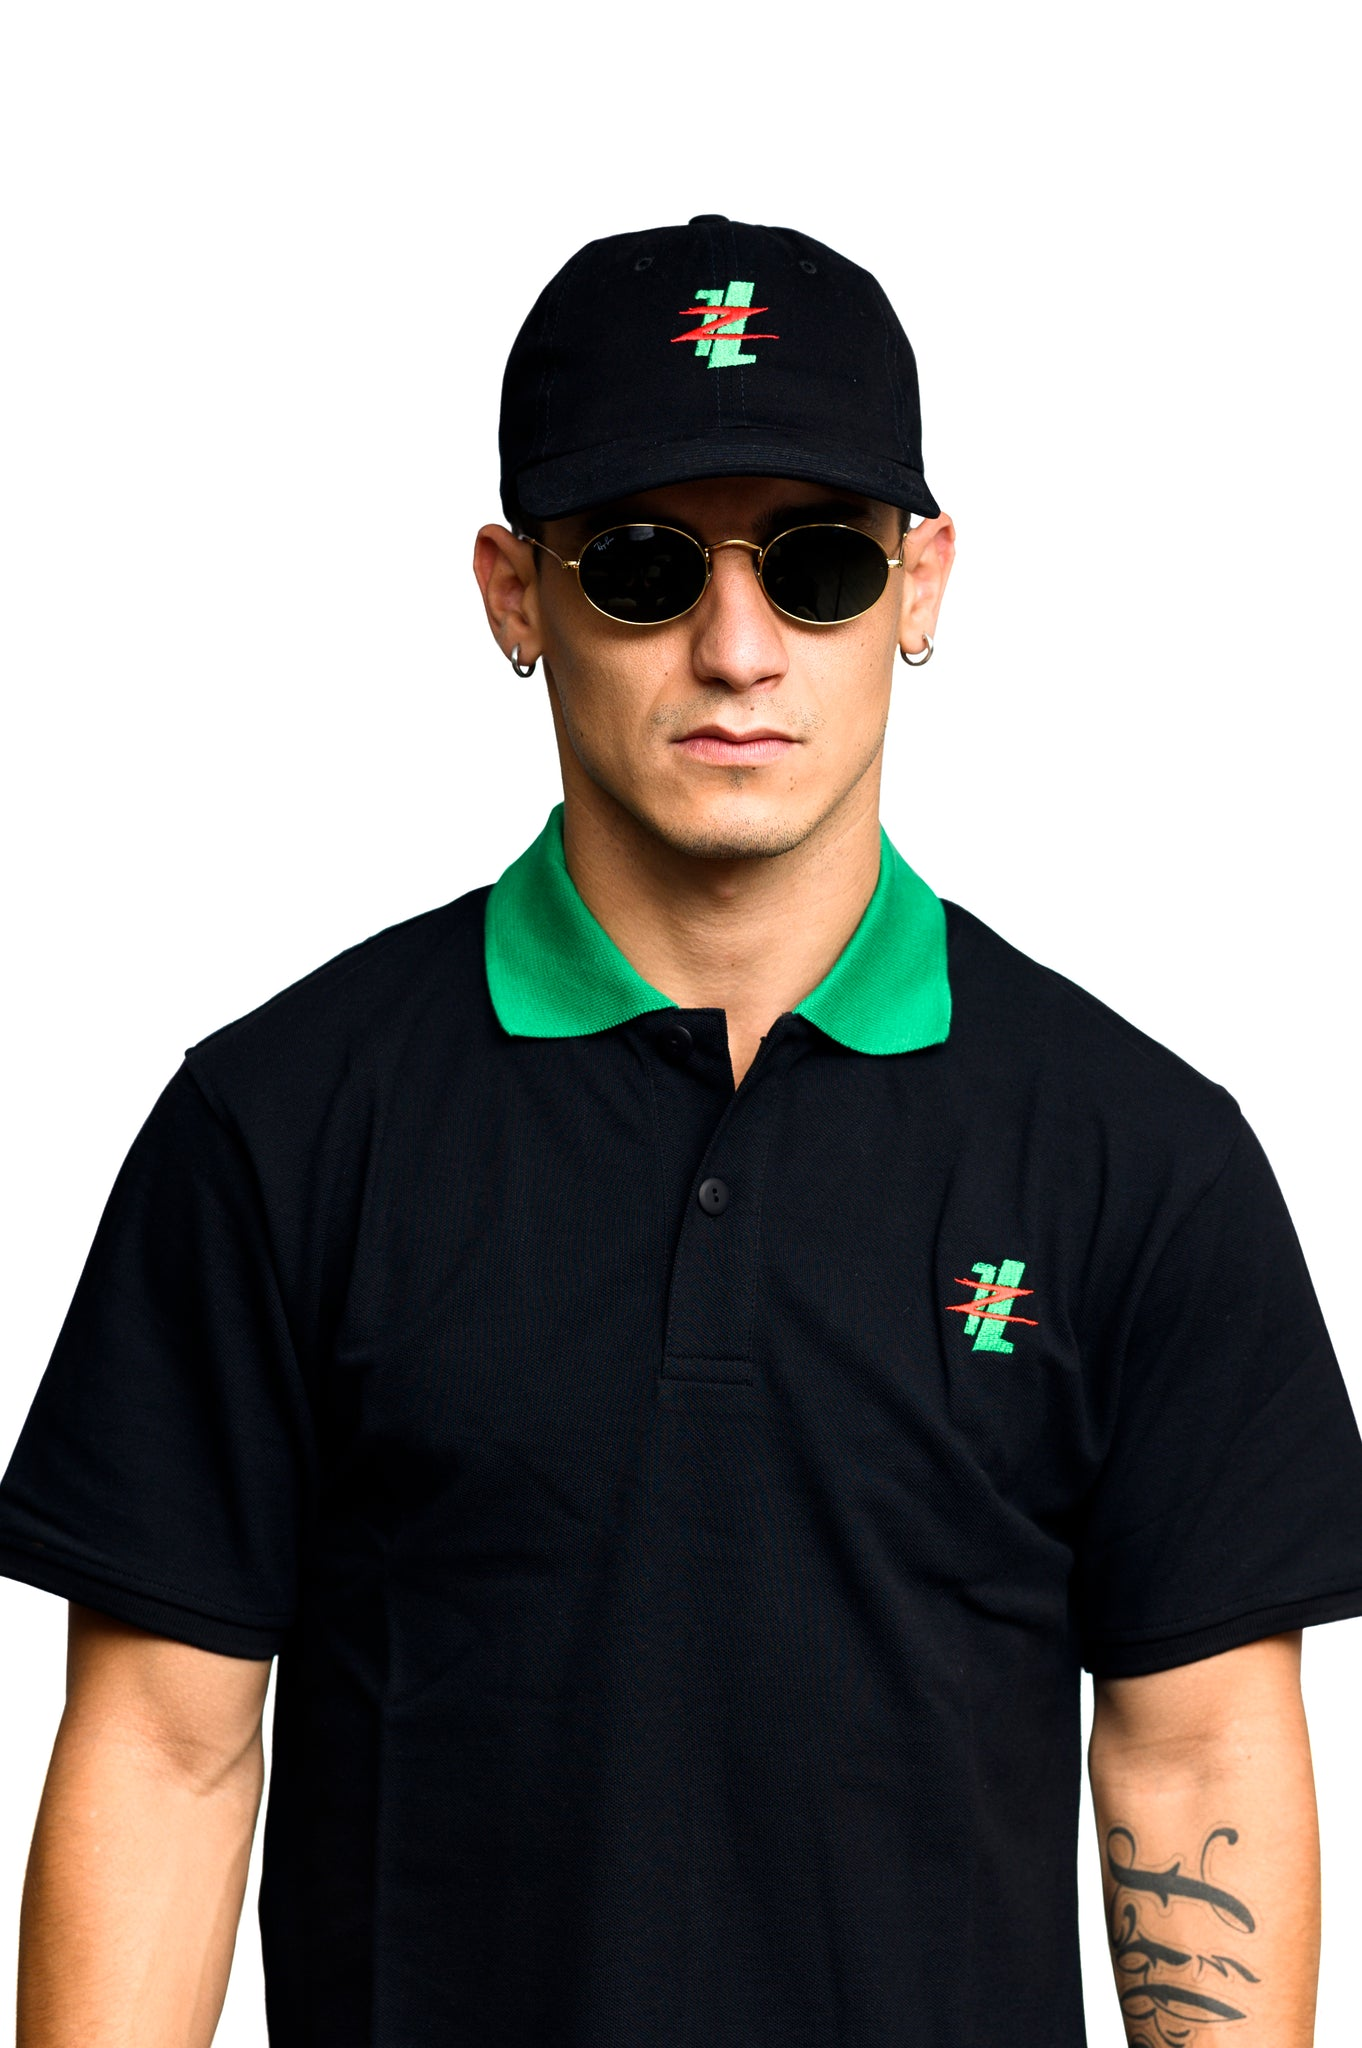 Lil Zoo x The Legits -  TL Zoo Polo Tee